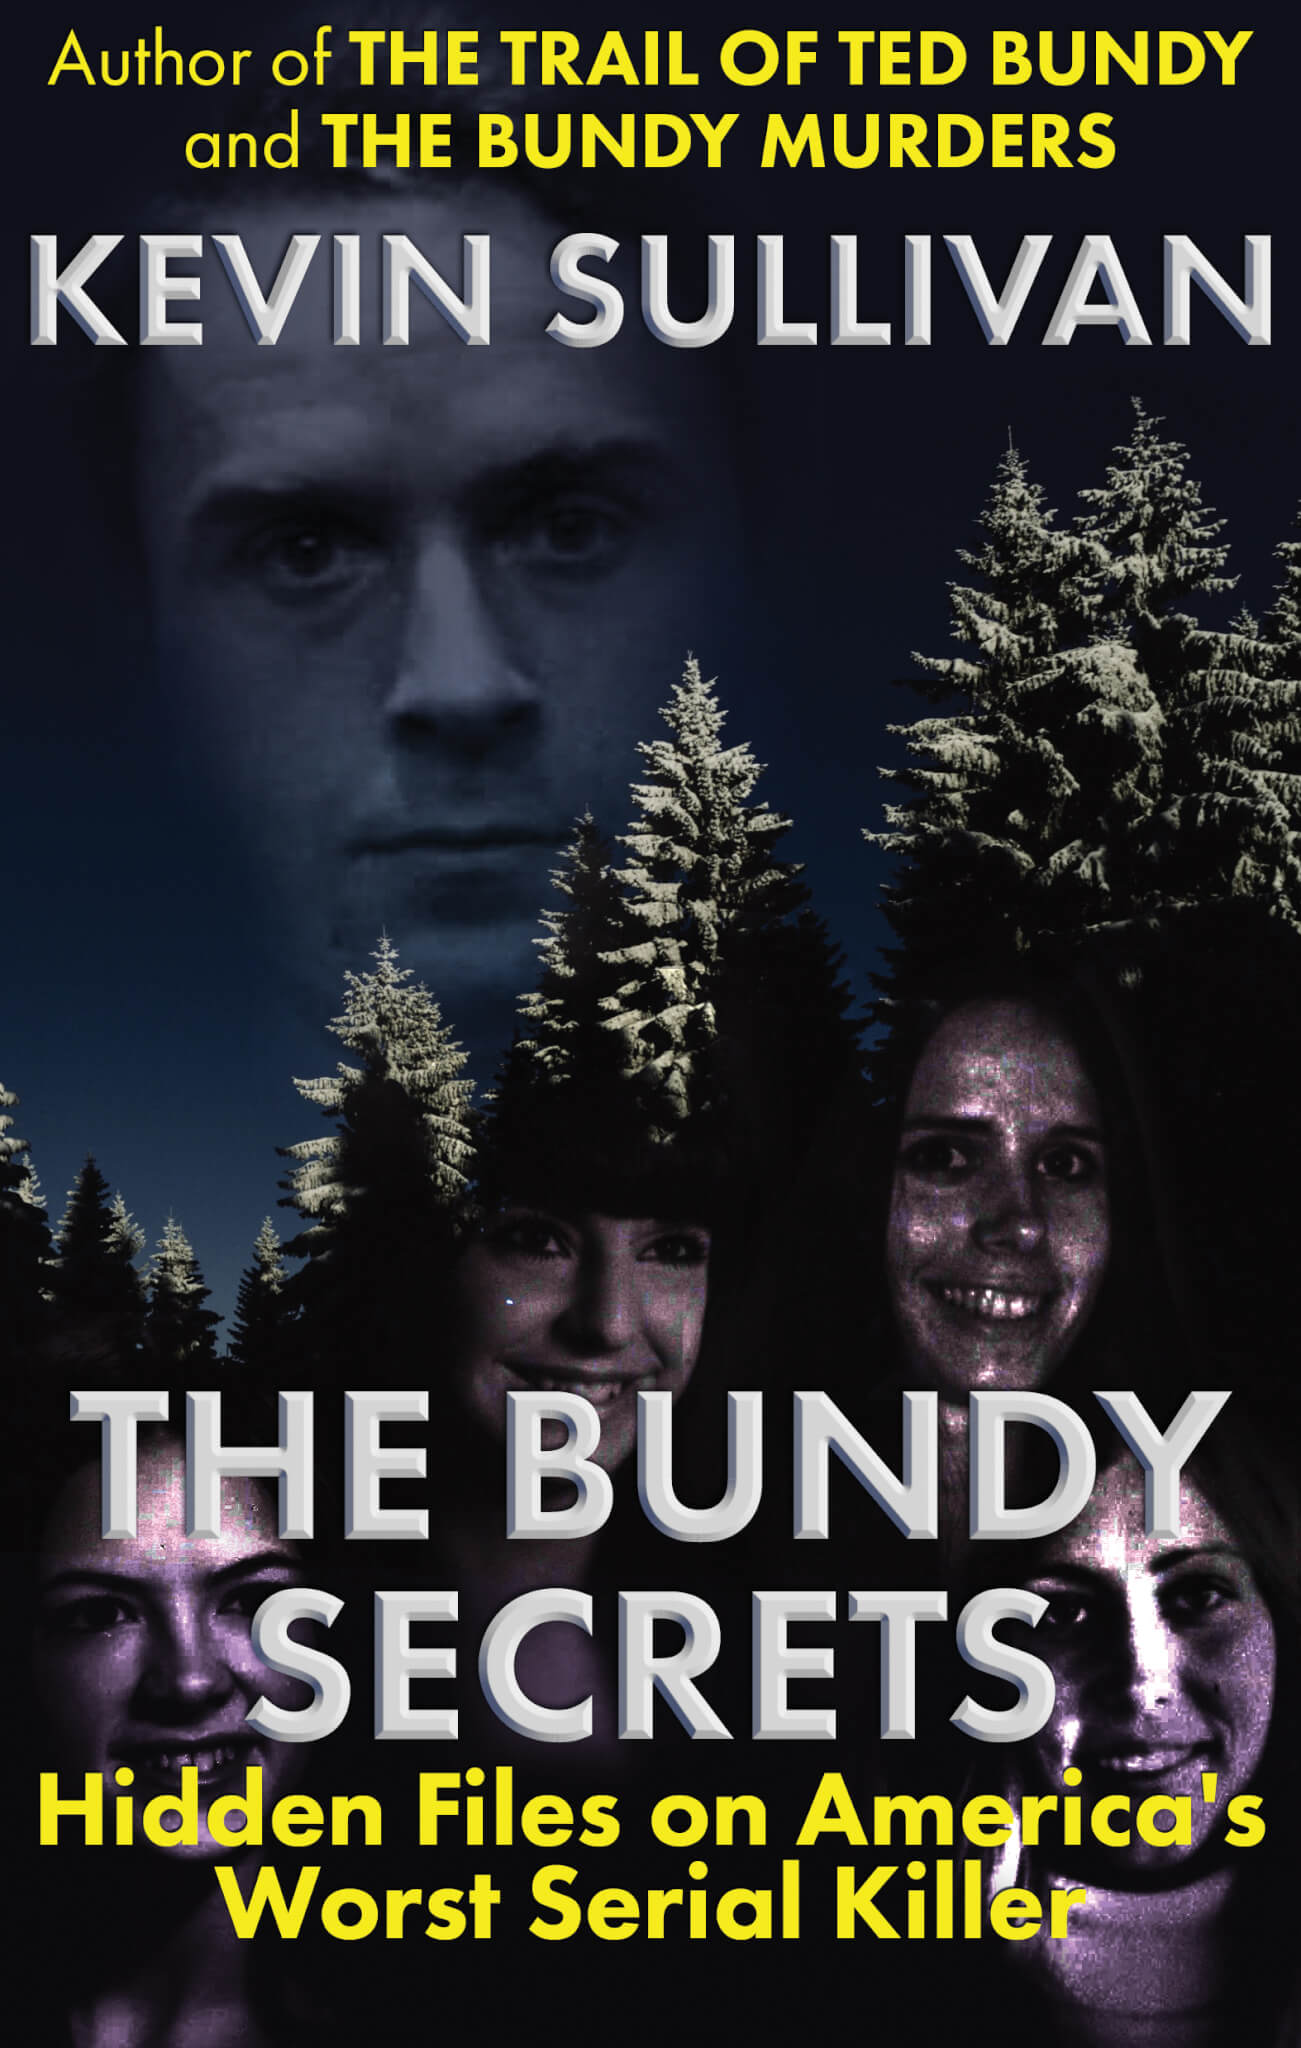 Audio books from wildblue press the bundy secrets hidden files on americas worst serial killer audio books available fandeluxe Images